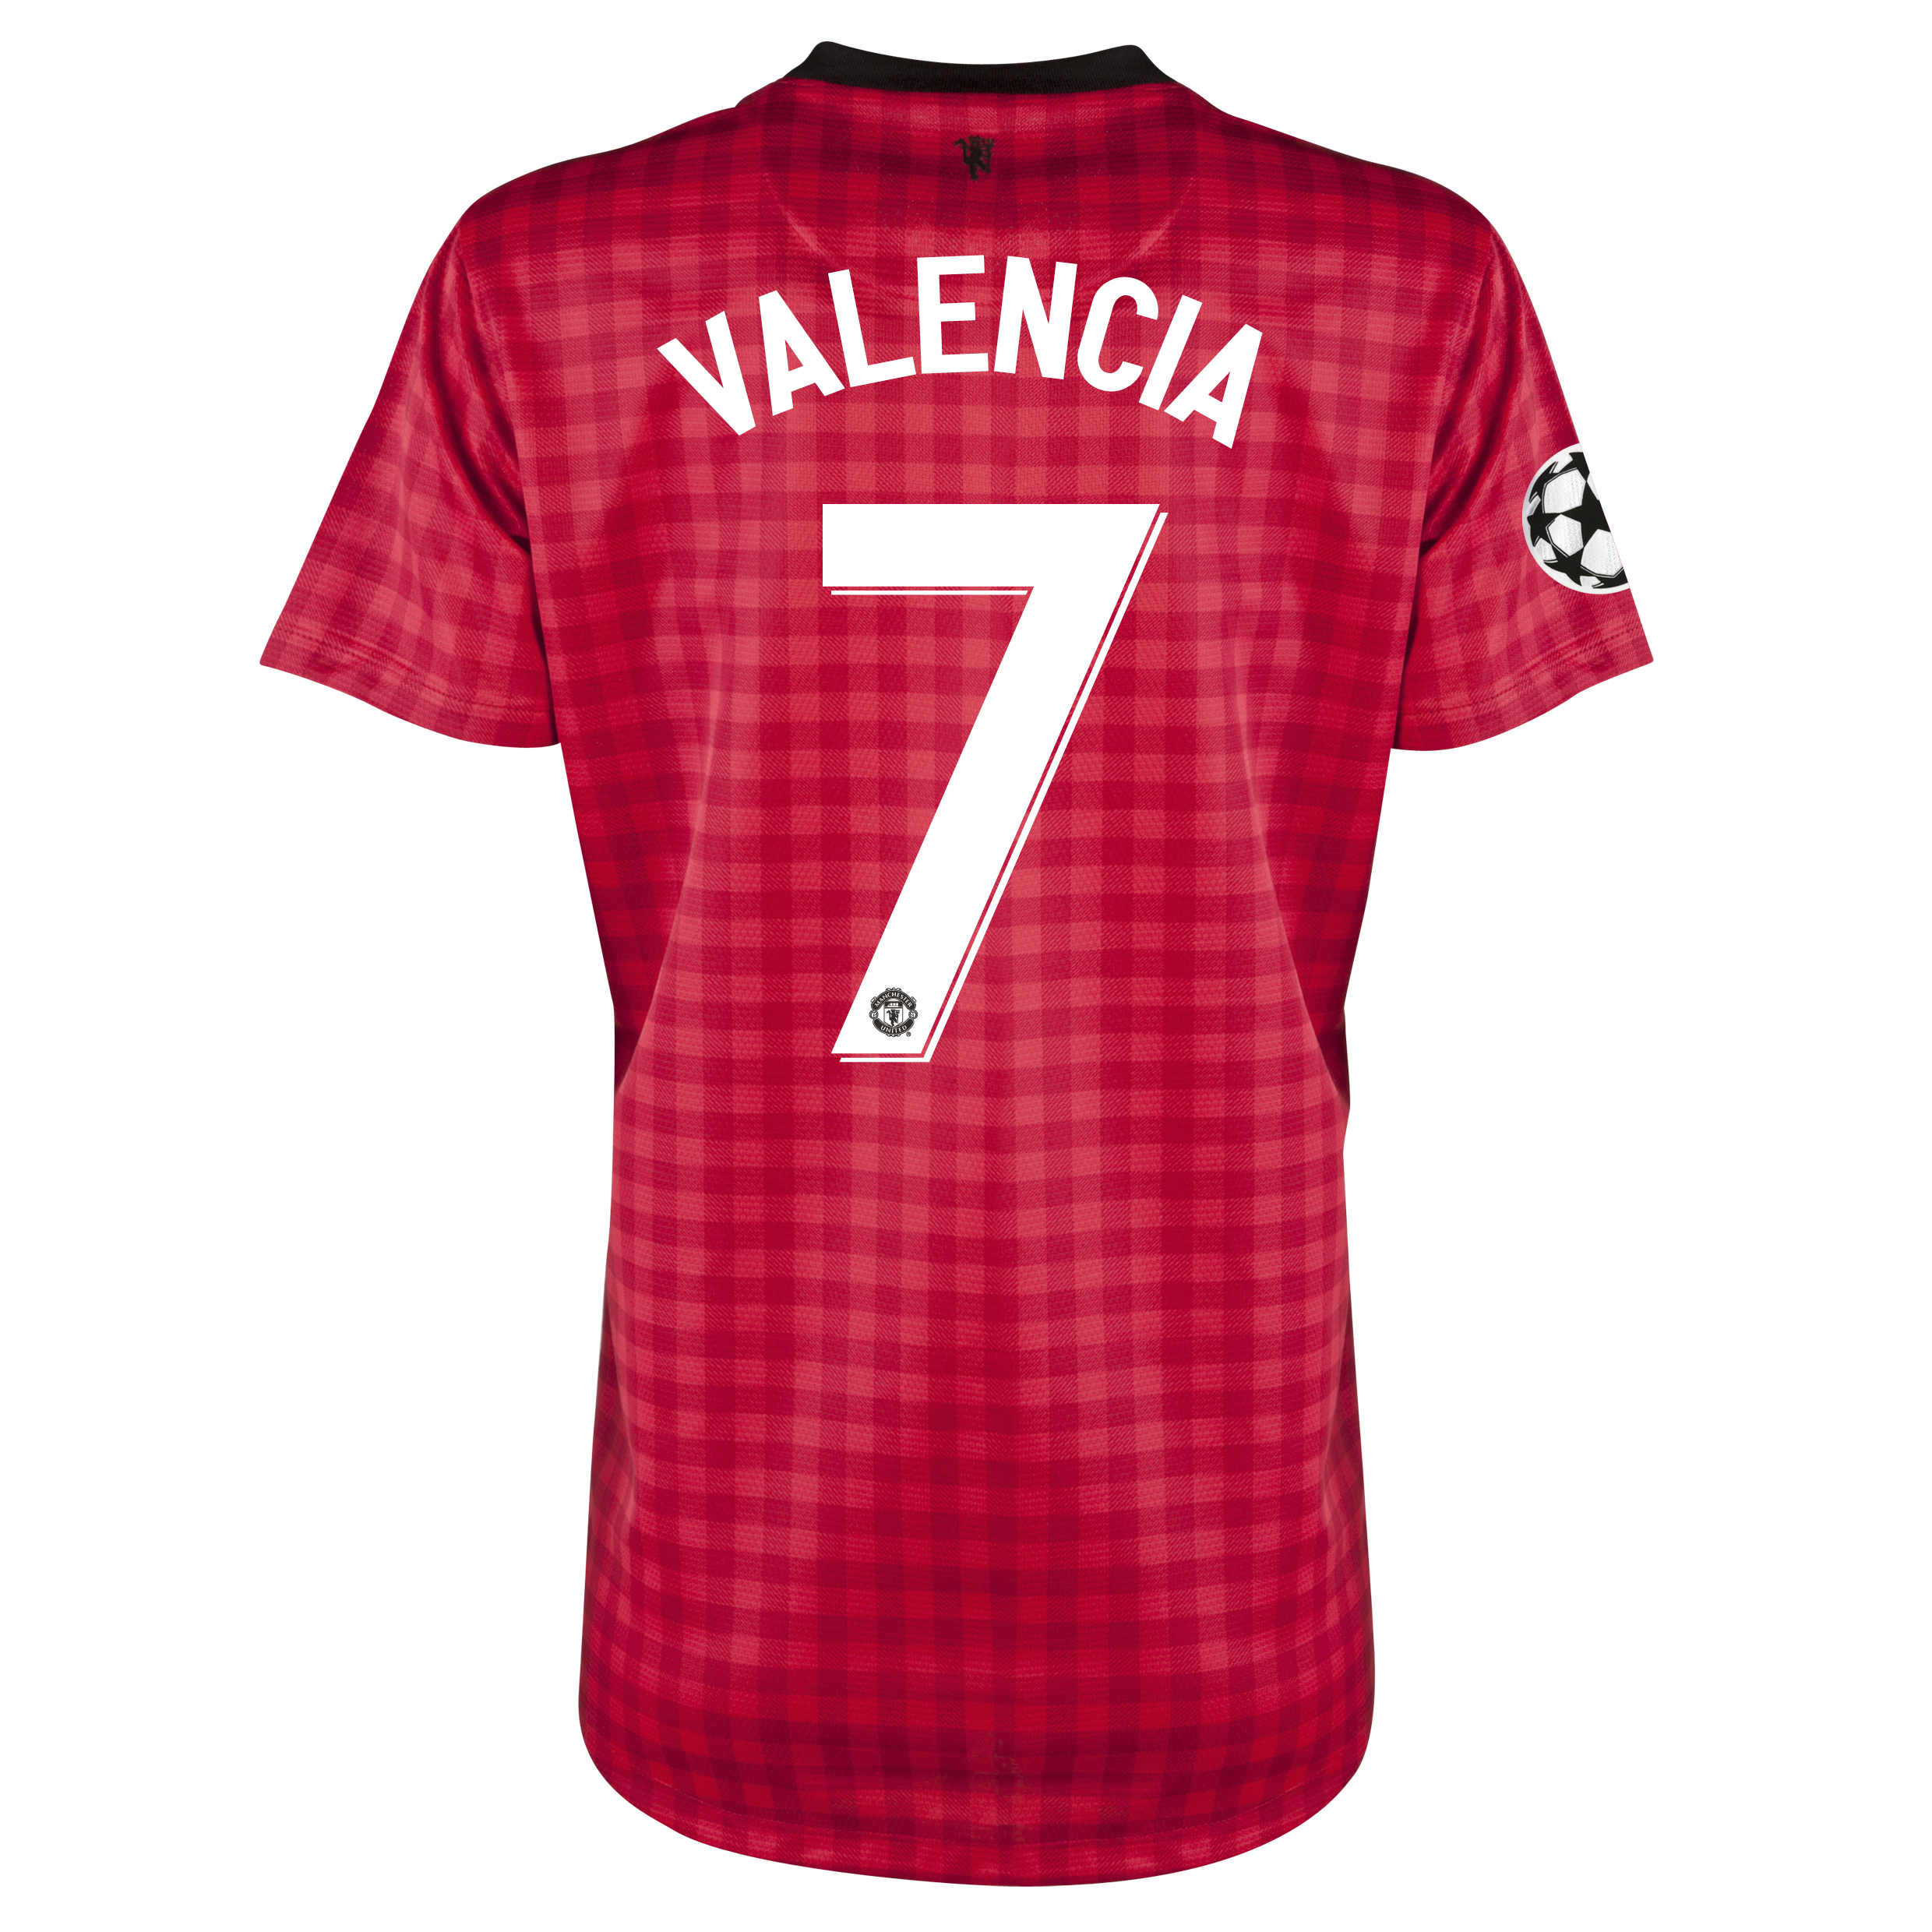 Man United UEFA Champions League Home Shirt 2012/13 - Womens with Valencia 7 printing